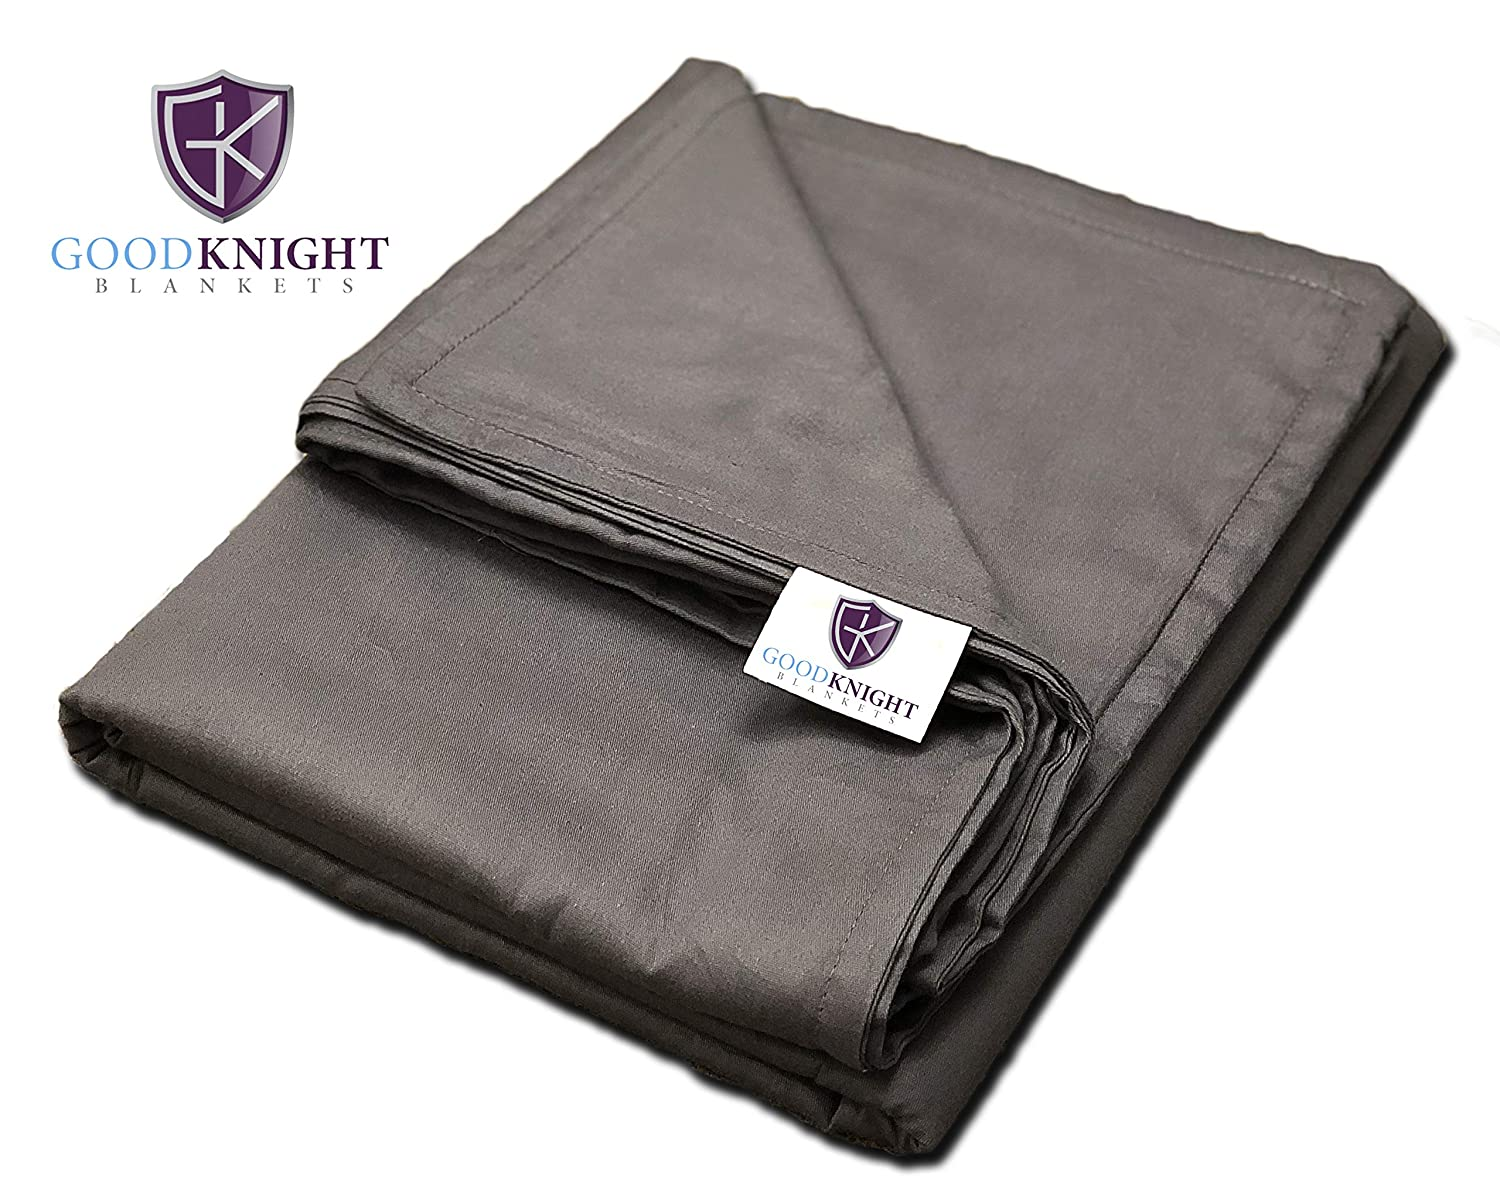 """Good Knight Blankets 100% Cotton Removable Duvet Cover for Weighted Blanket (60""""x80"""")"""